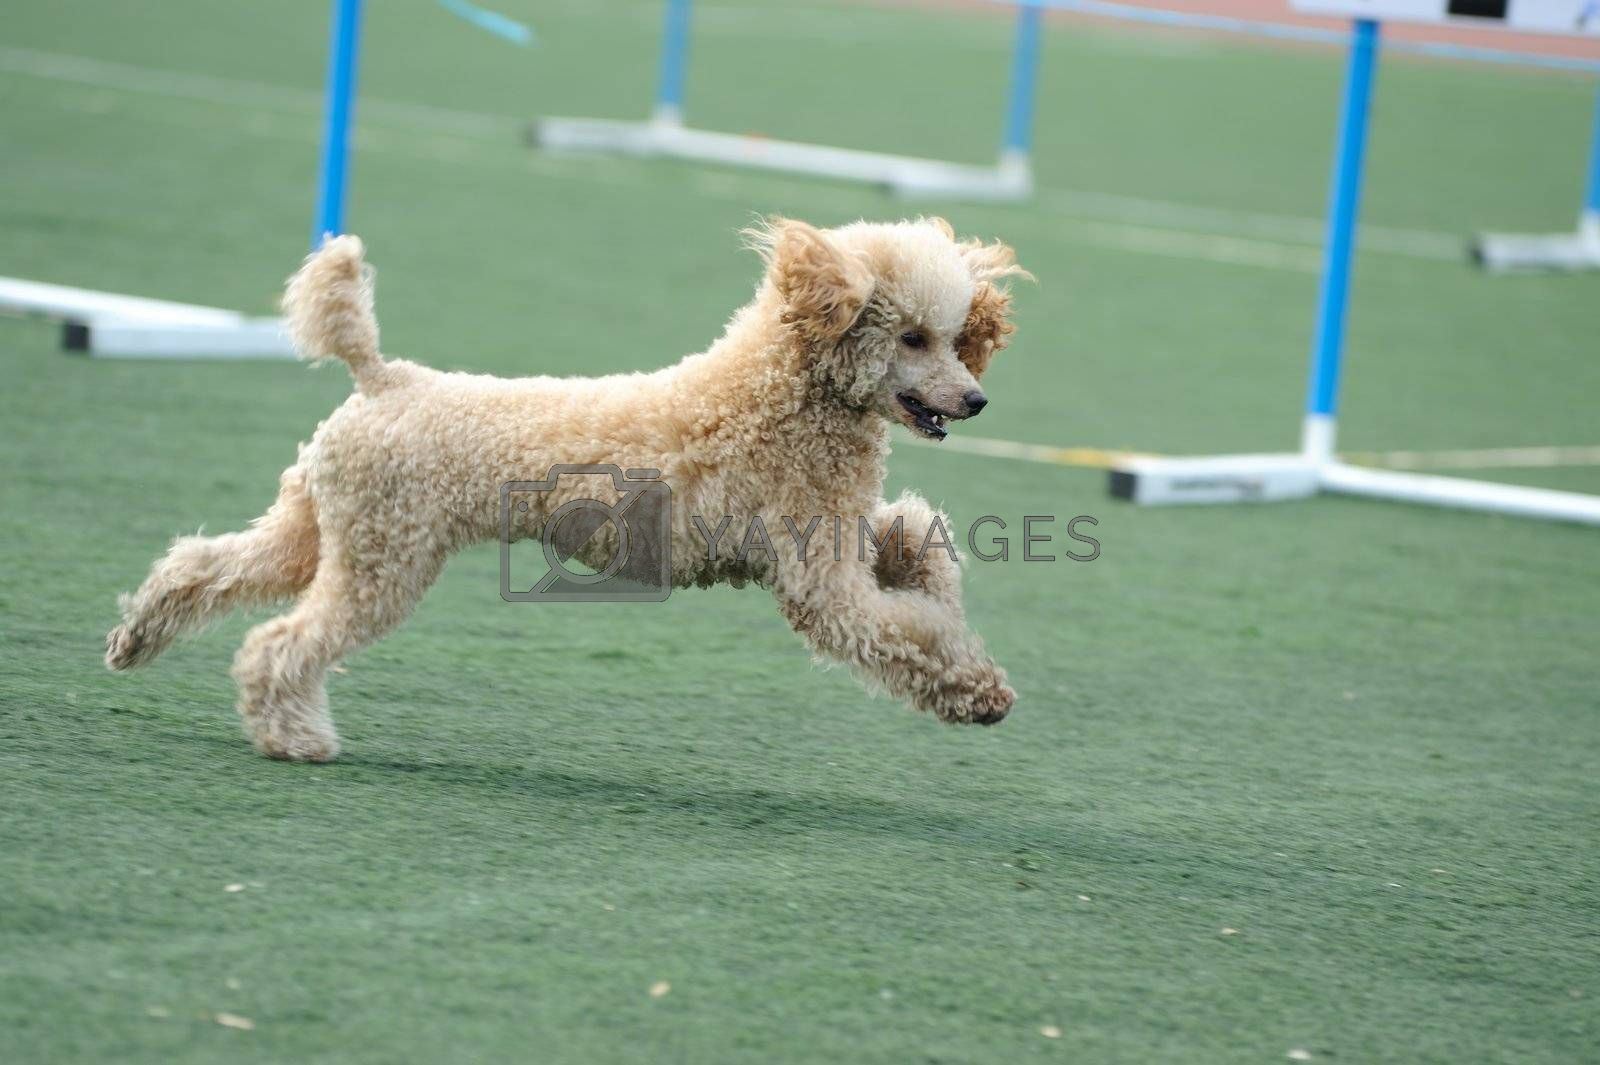 Lovely Poodle dog running on the playground